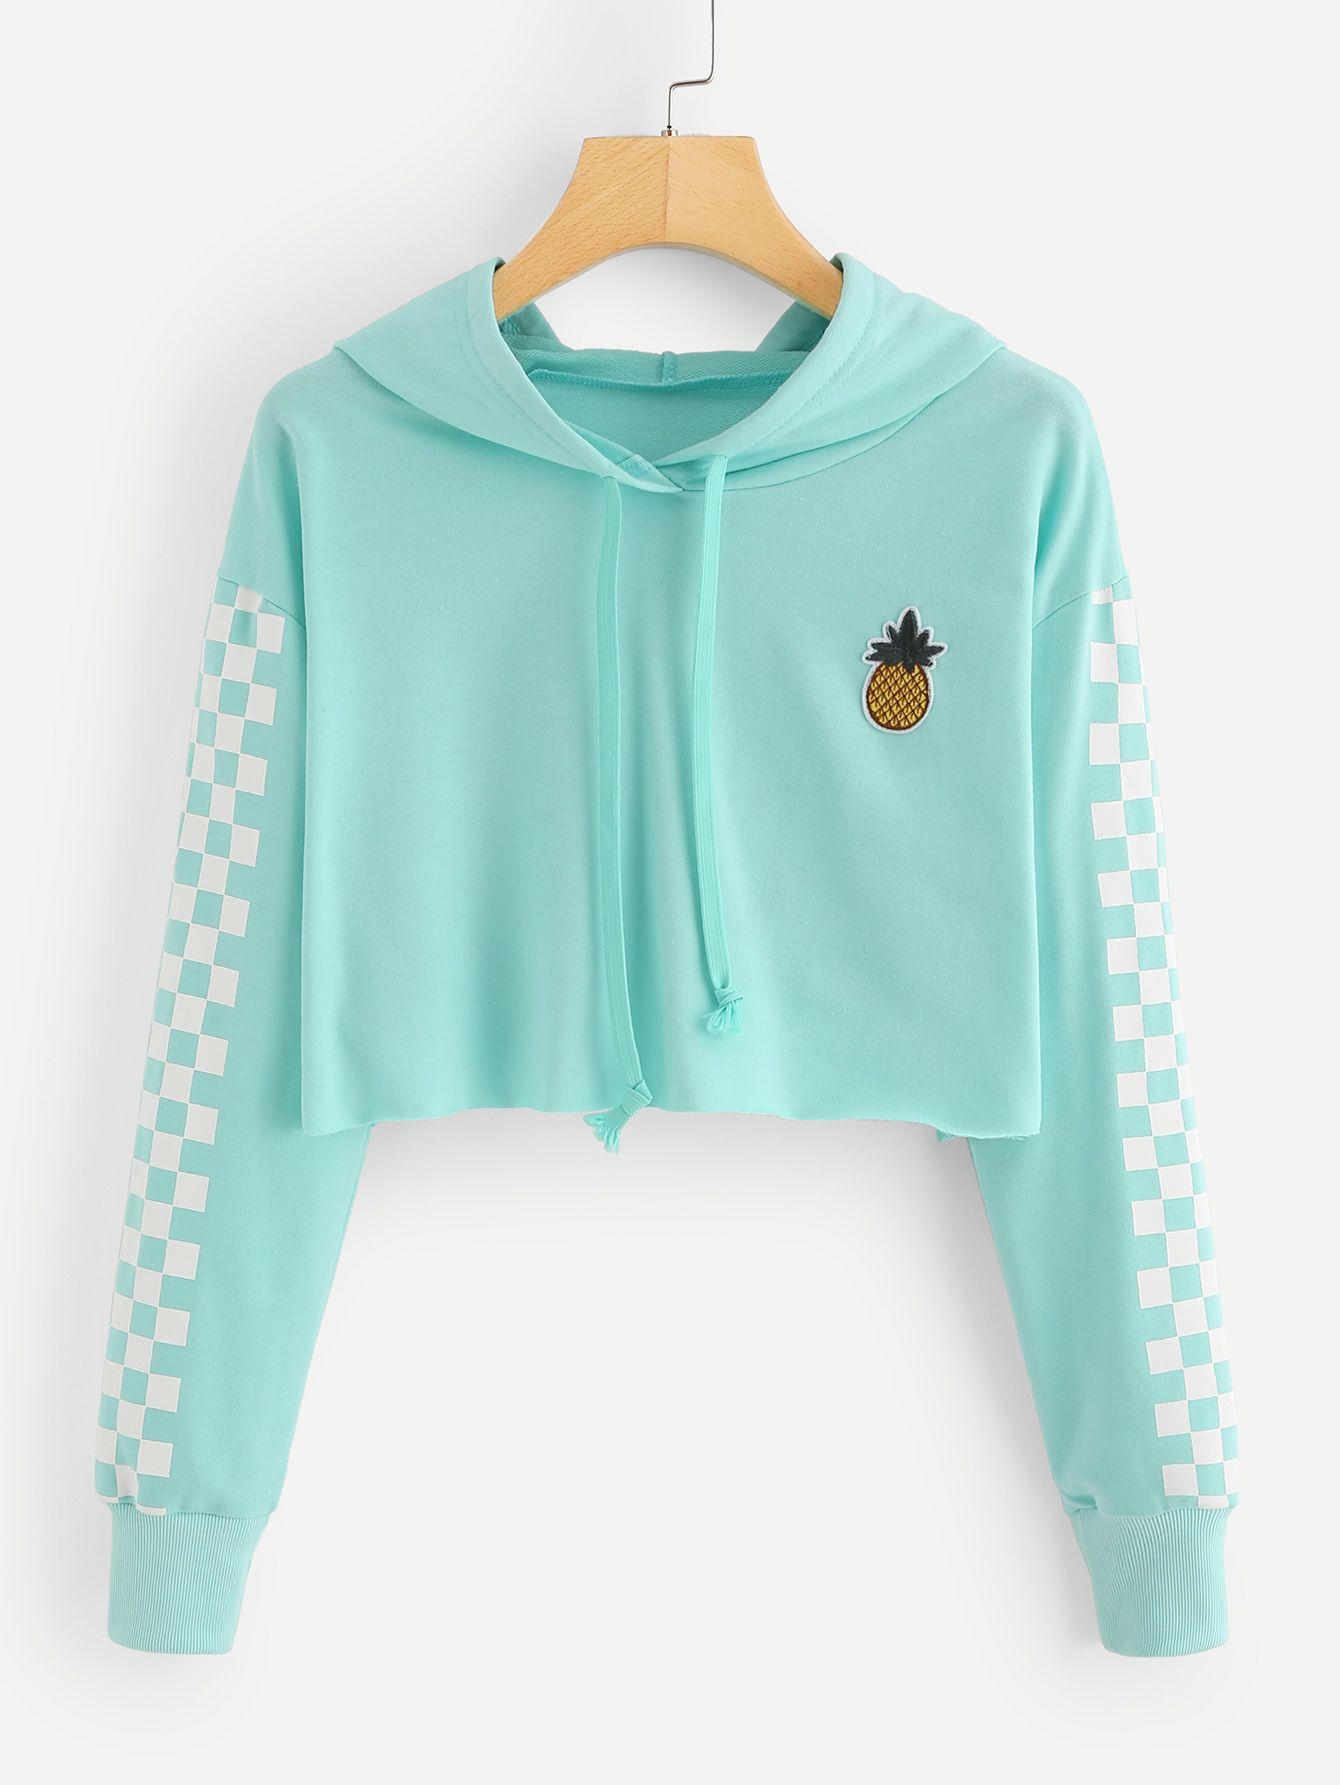 e4594374993c9 Pineapple Embroidered Gingham Crop HoodieFor Women-romwe. Pineapple  Embroidered Gingham Crop HoodieFor Women-romwe Crop Top ...